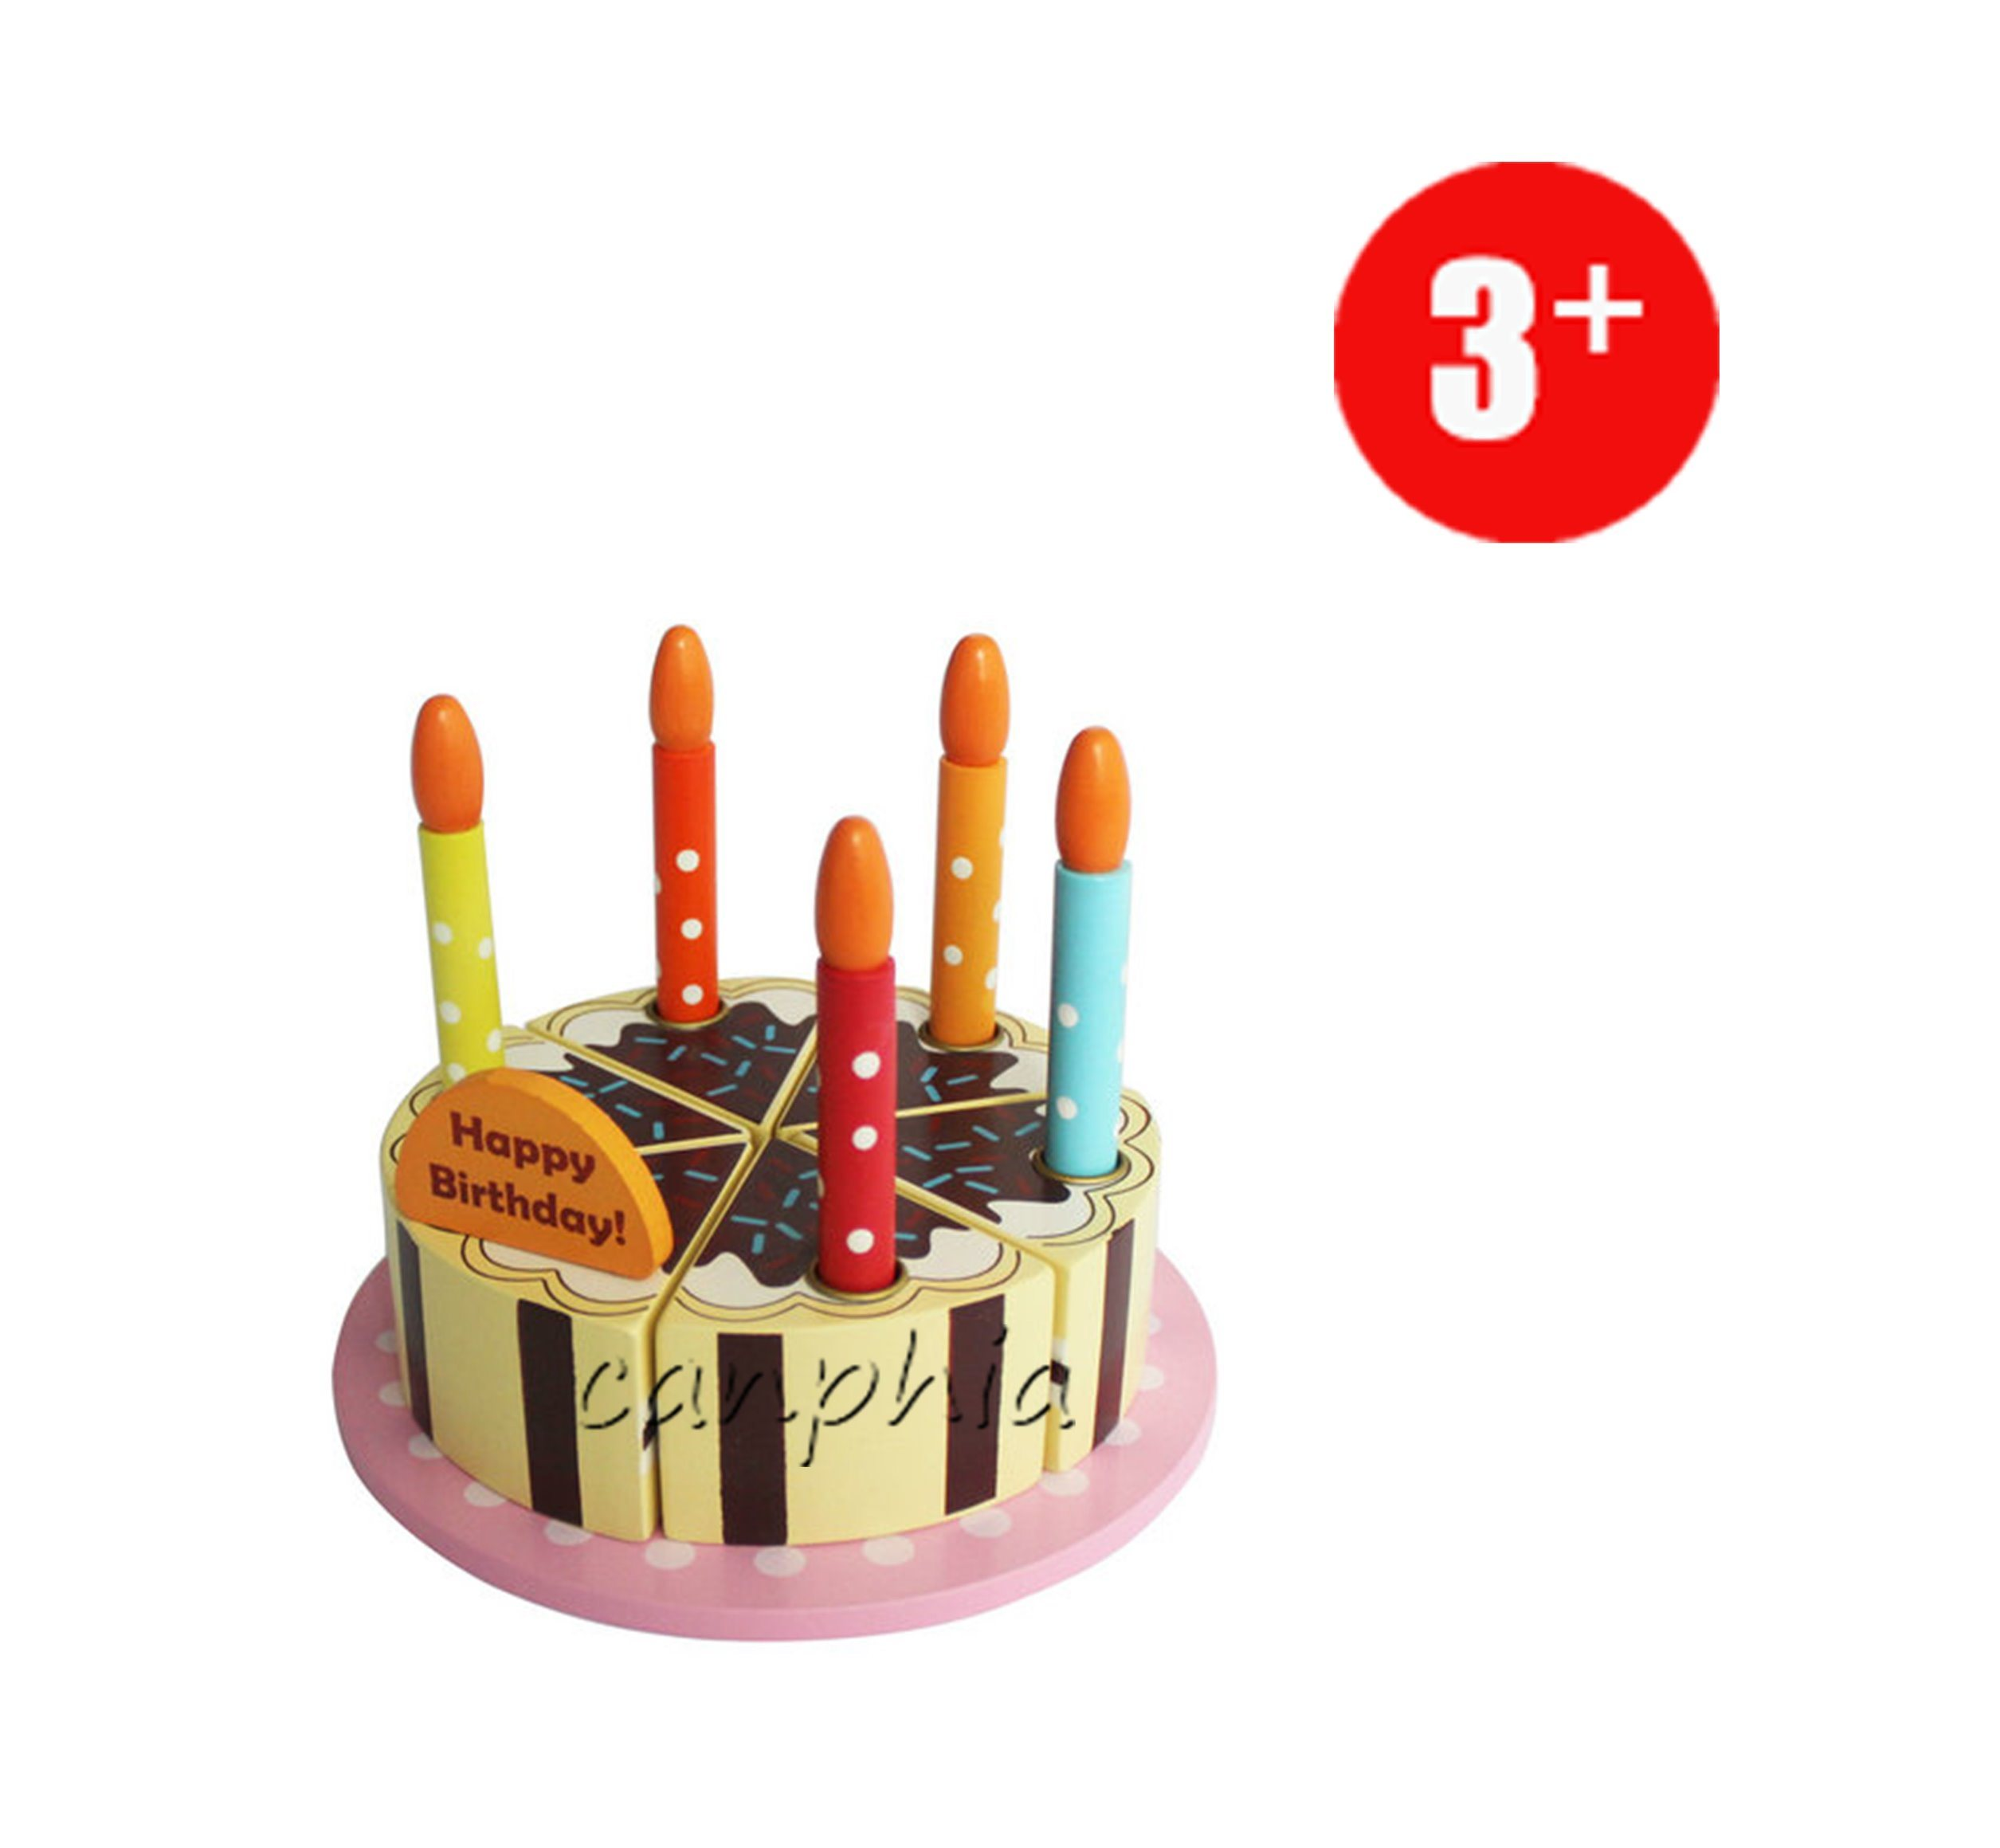 Wooden Toy Educational Pretend Play Cake Playset DIY Toy